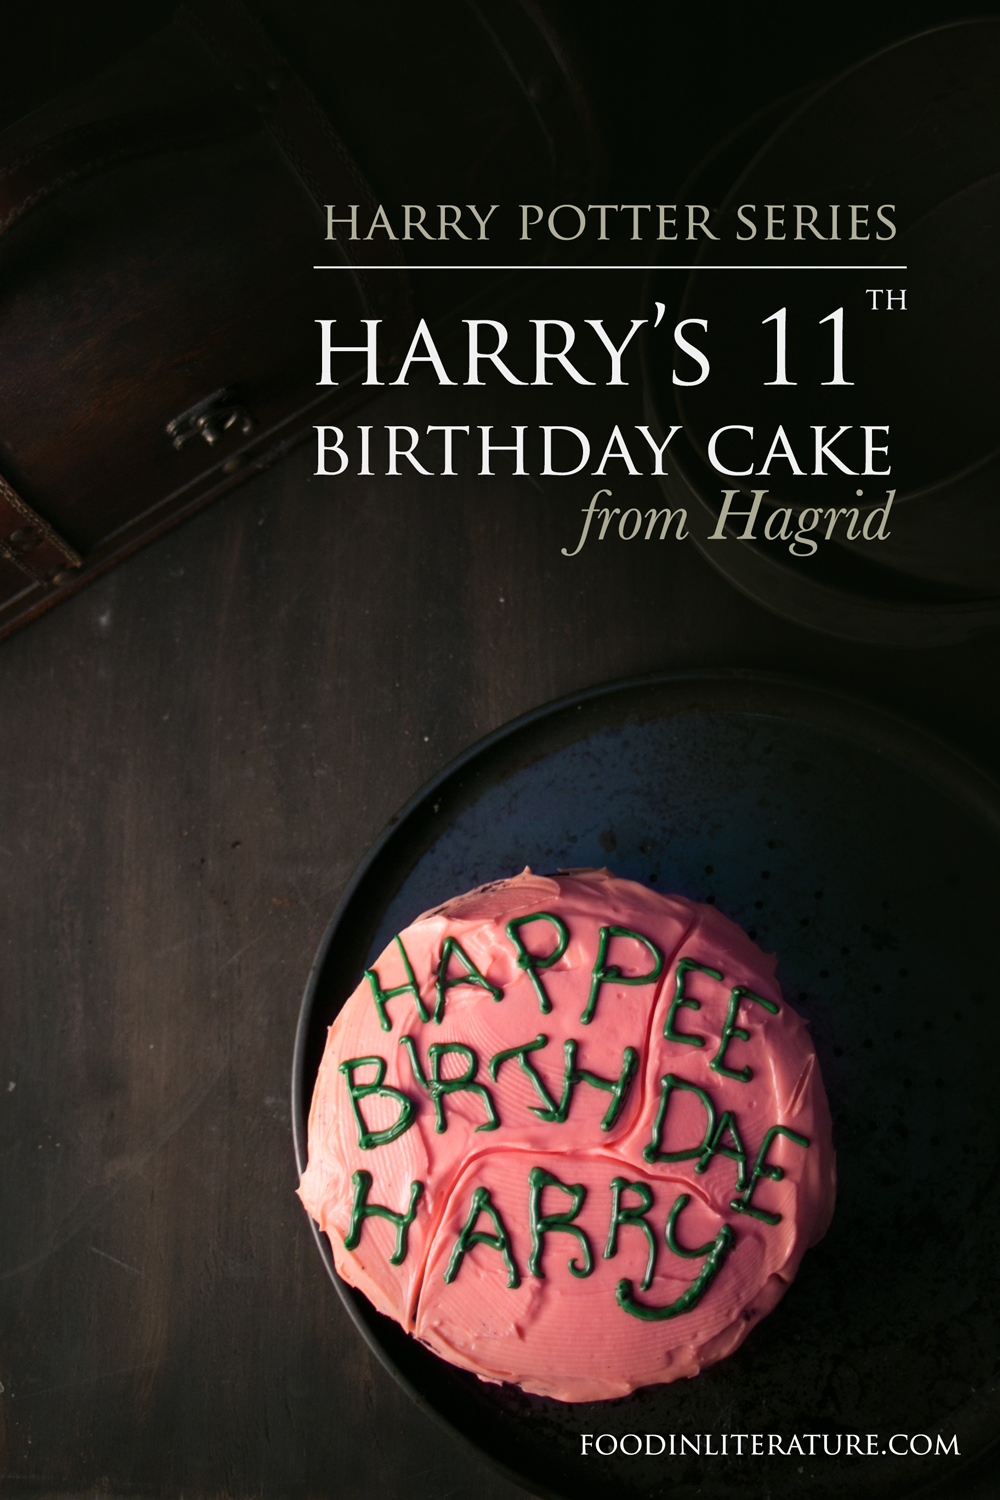 Celebrate Harrys Birthday This July 31st With The Sticky Chocolate Cake Hagrid Made Him For